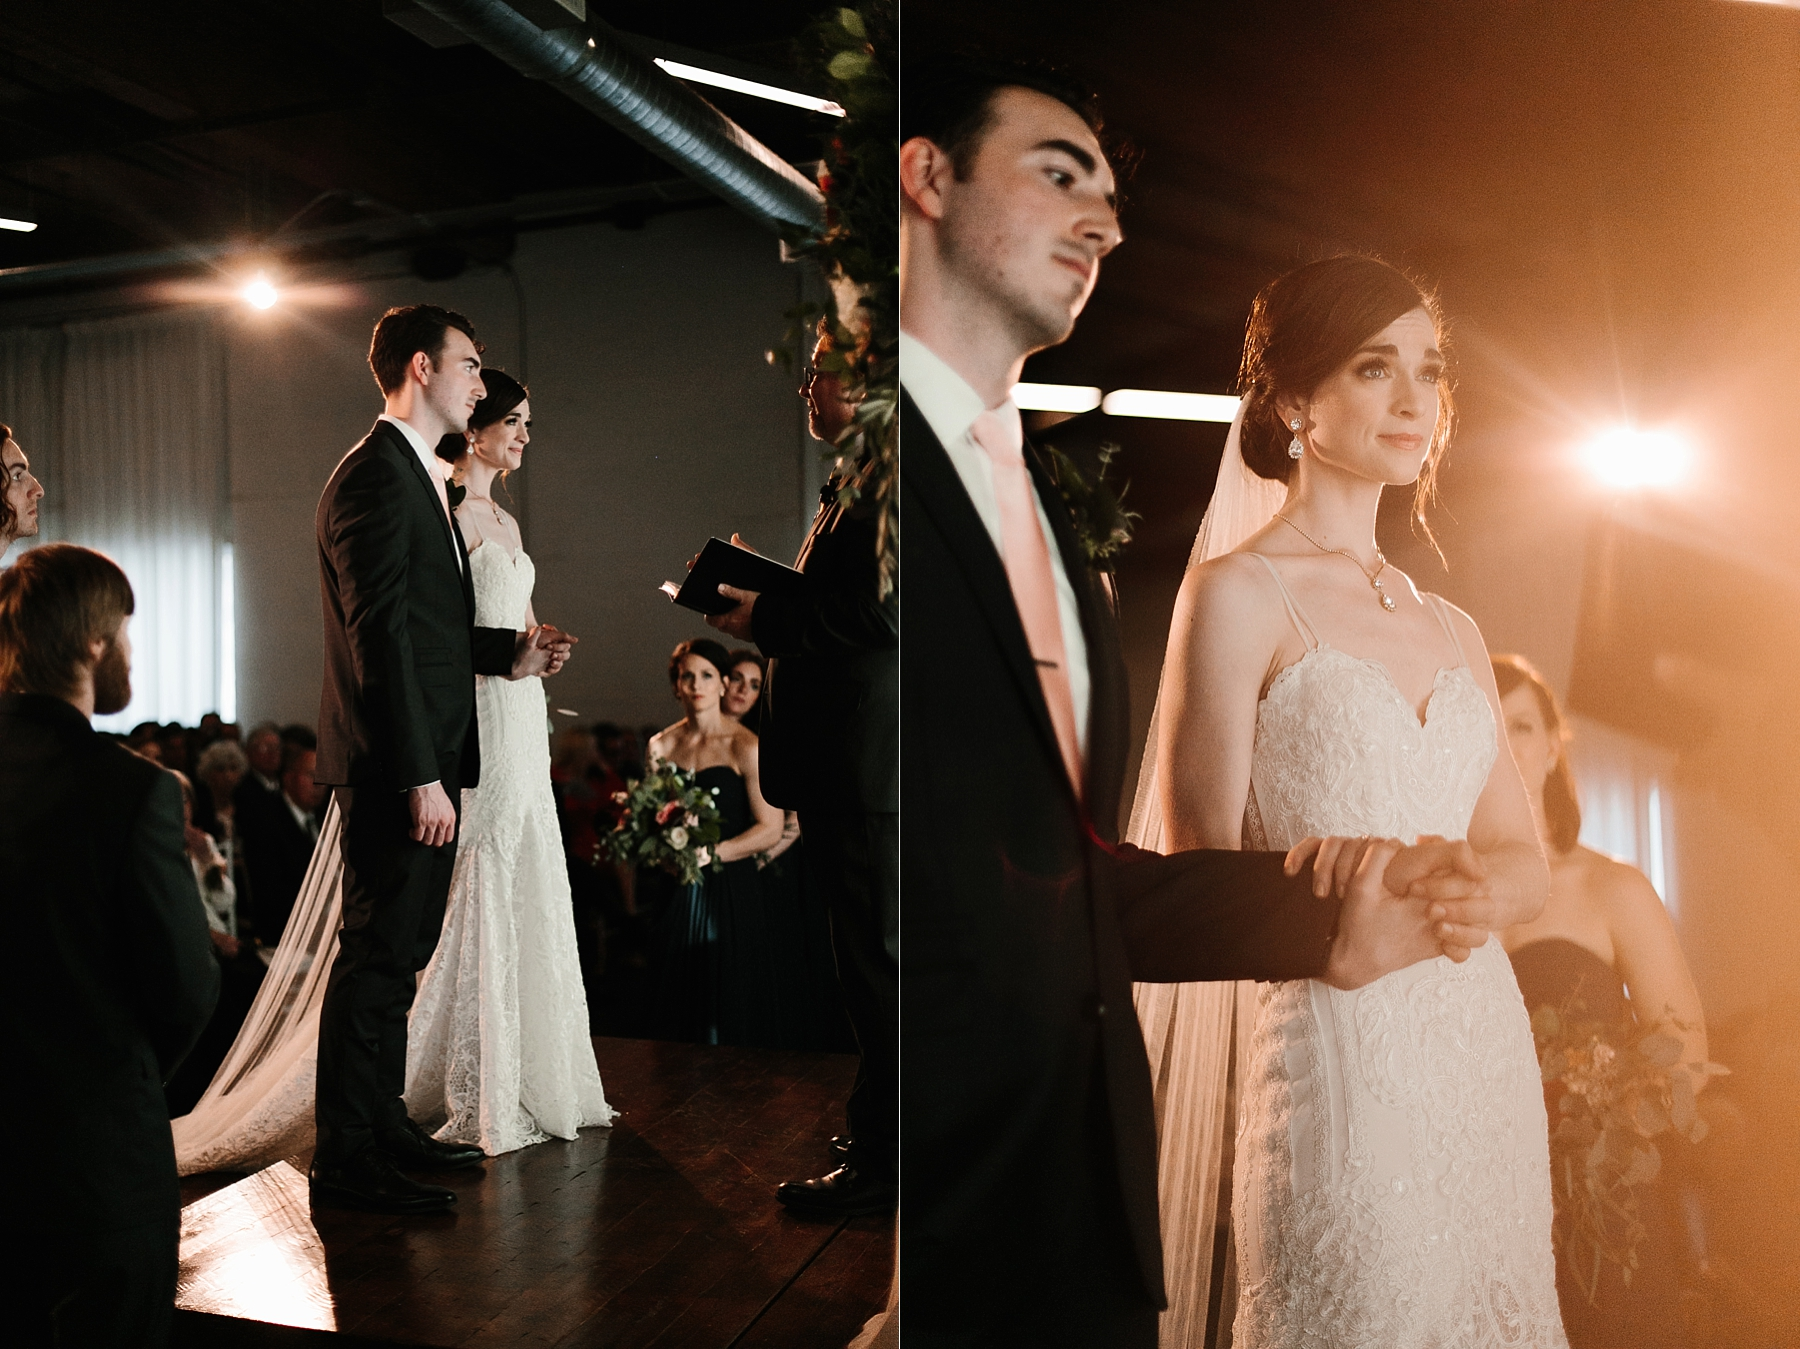 Emily + Caleb _ an elegant, intentional, industrial style wedding with navy + gold accents at 6500 in Dallas, TX by North Texas Wedding Photographer Rachel Meagan Photography _ 083